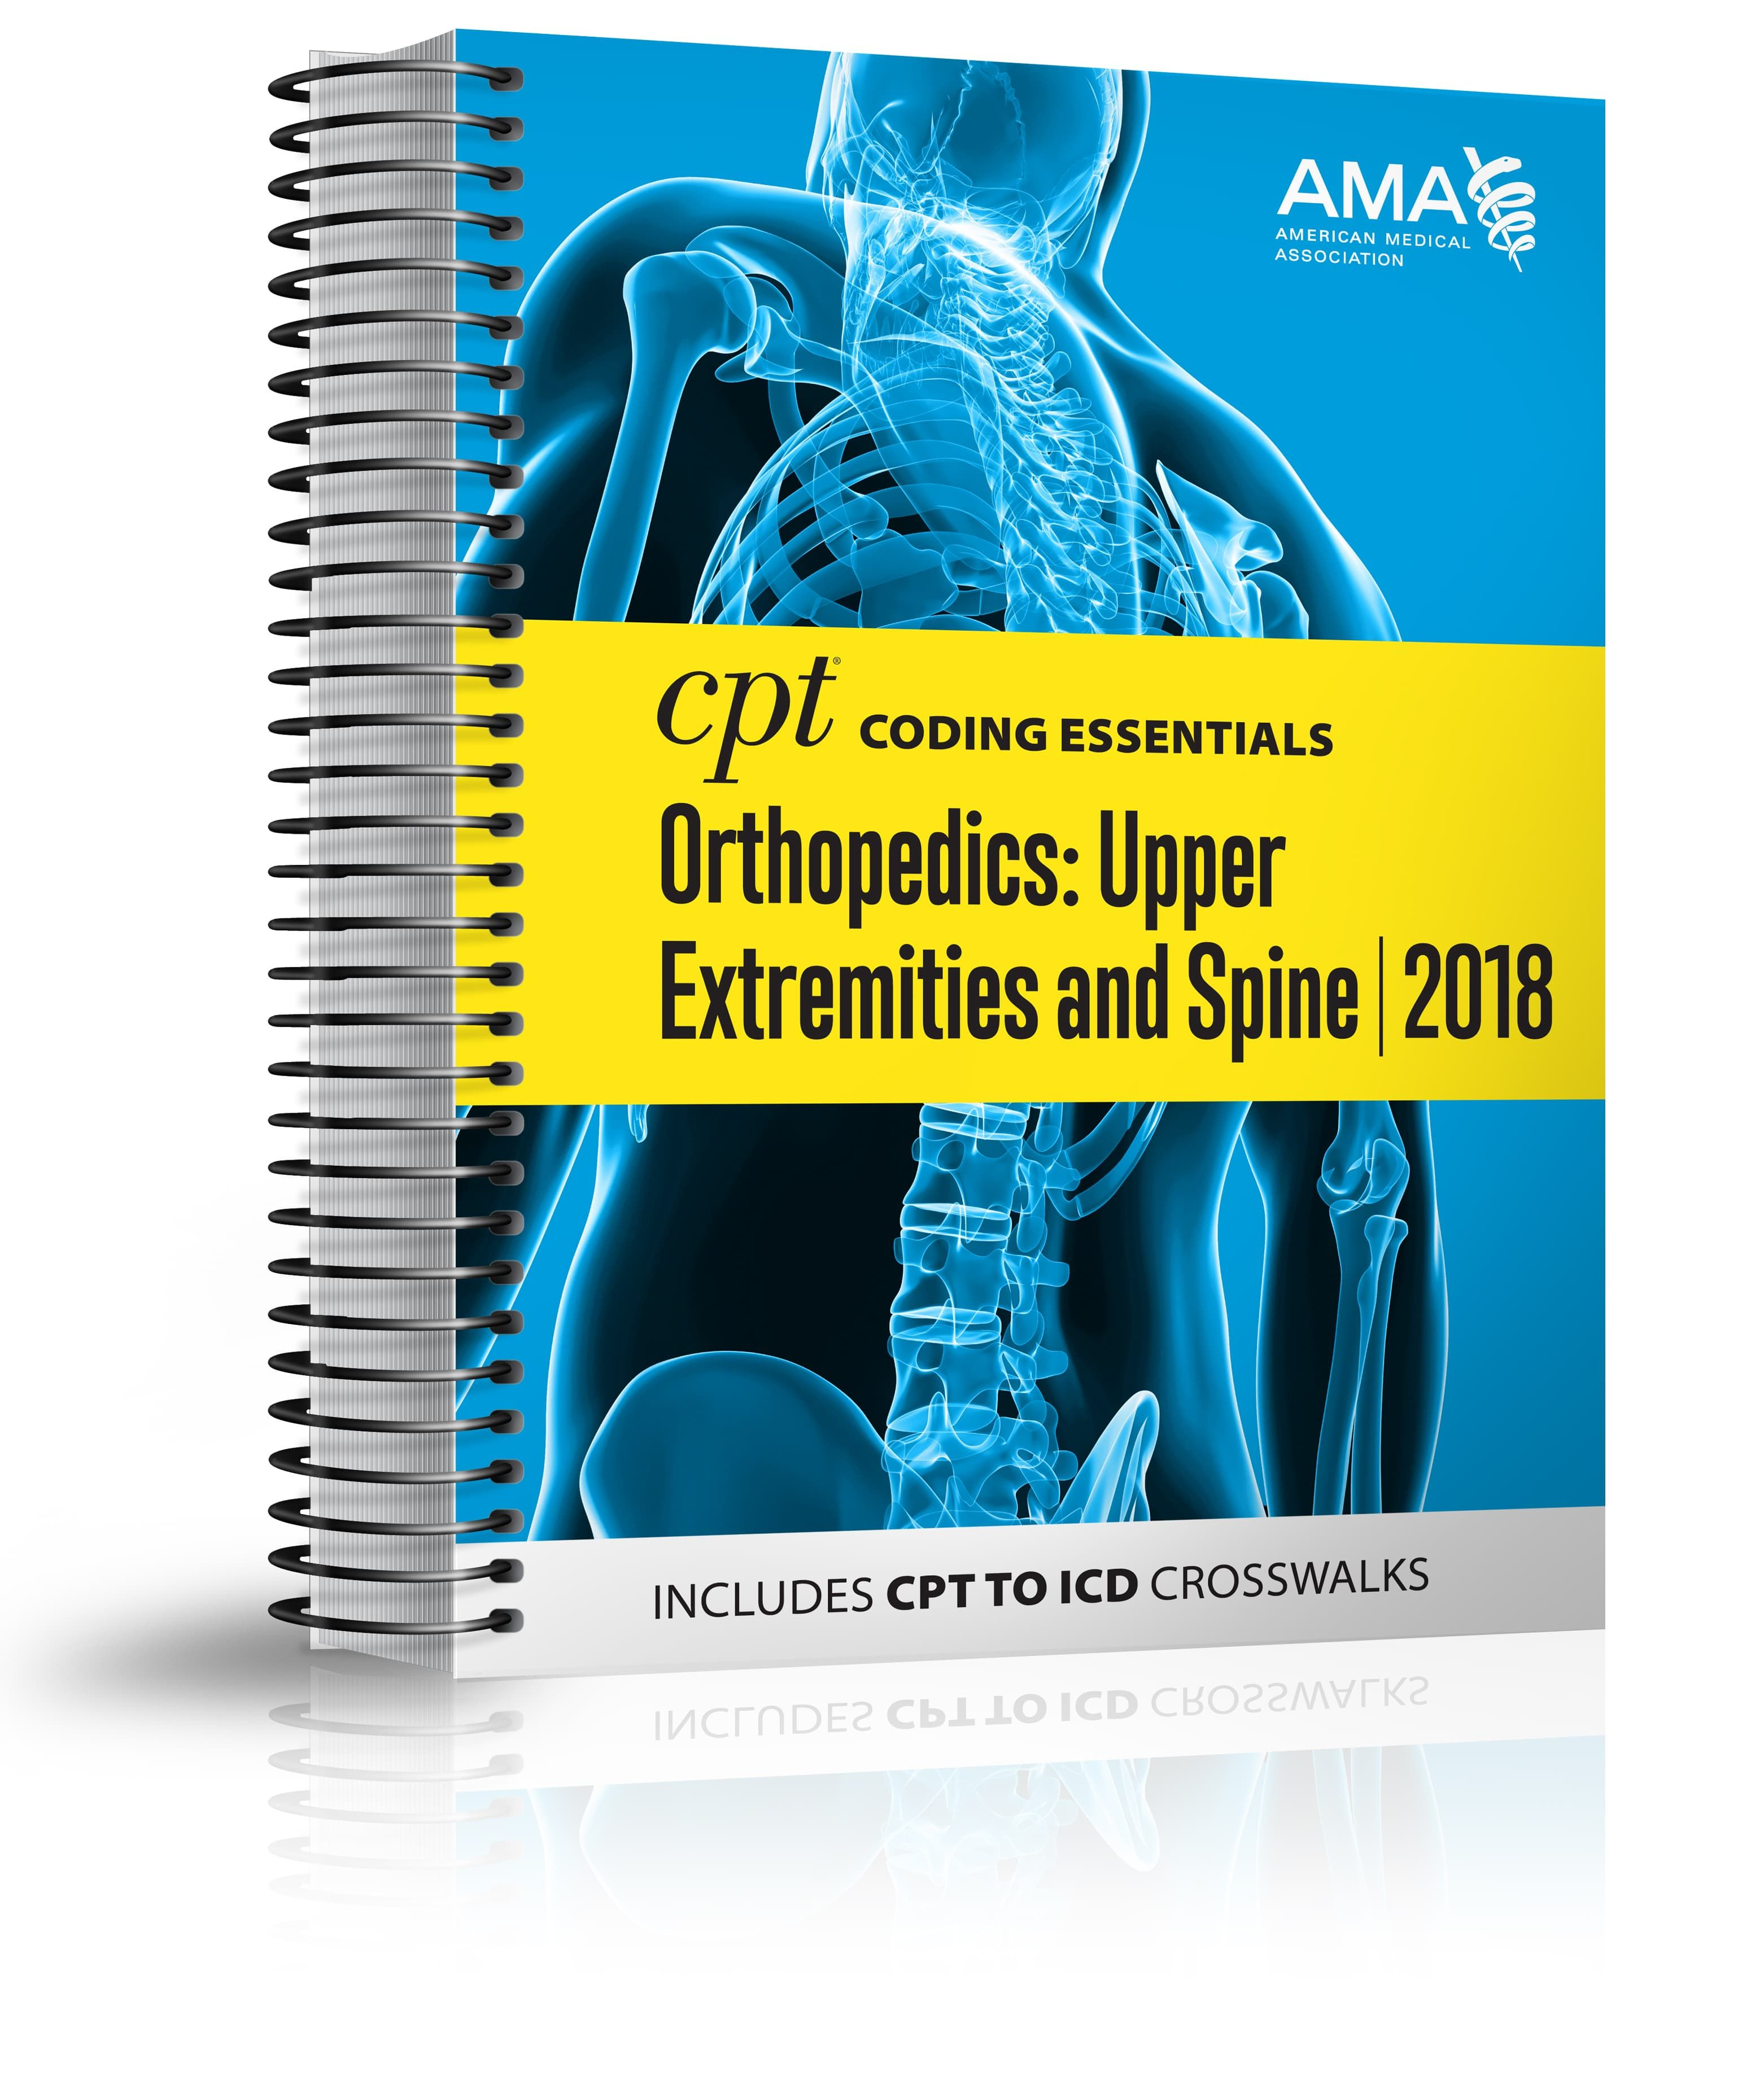 Cpt Coding Essentials For Orthopaedics Upper And Spine